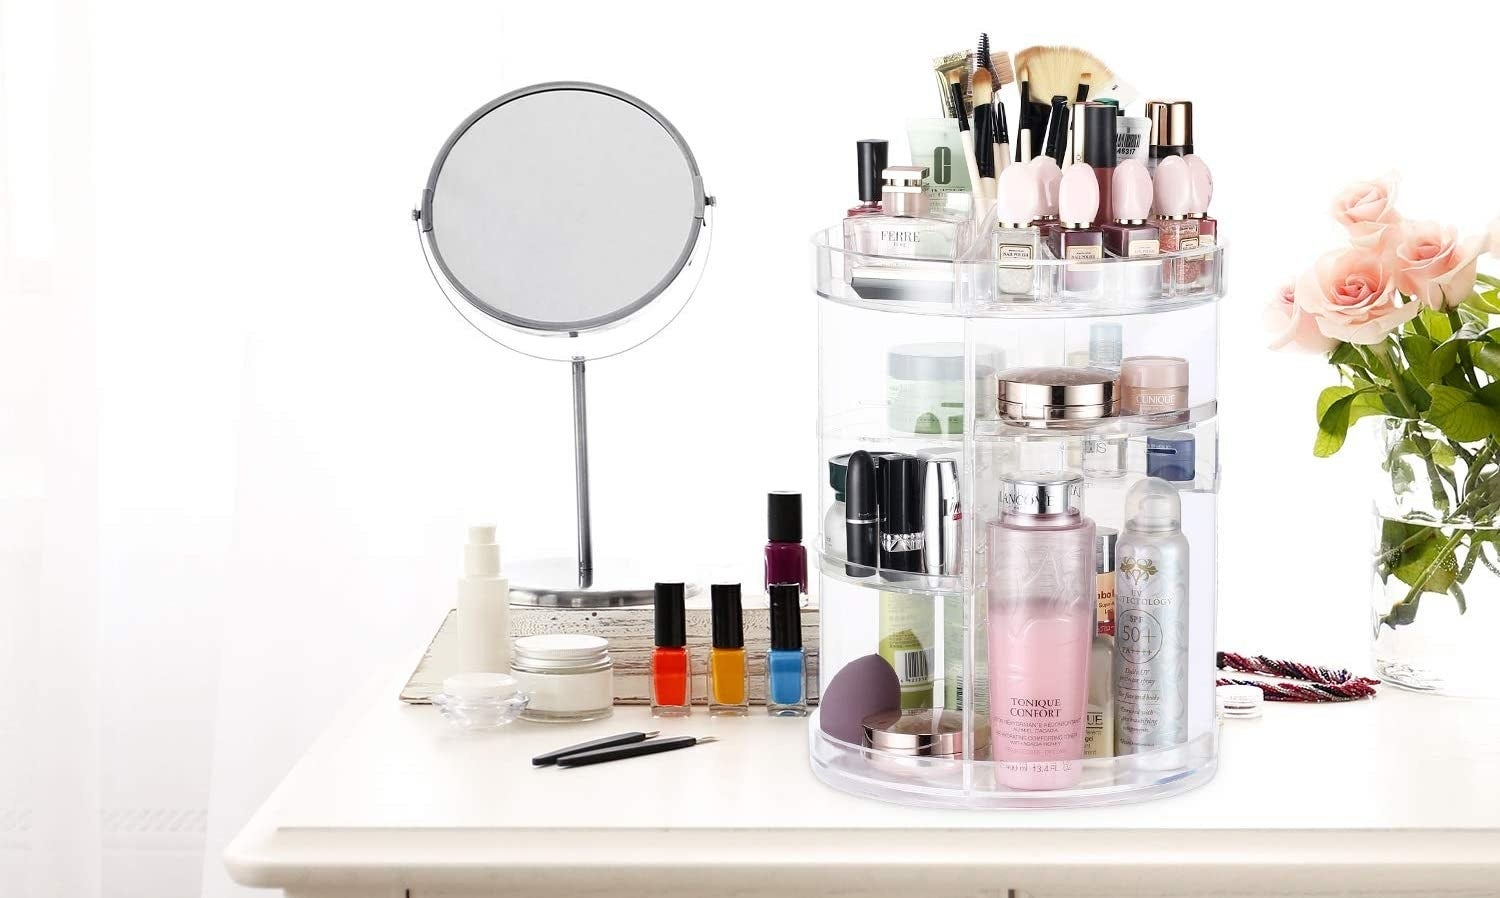 A makeup caddy that rotates and is filled with makeup